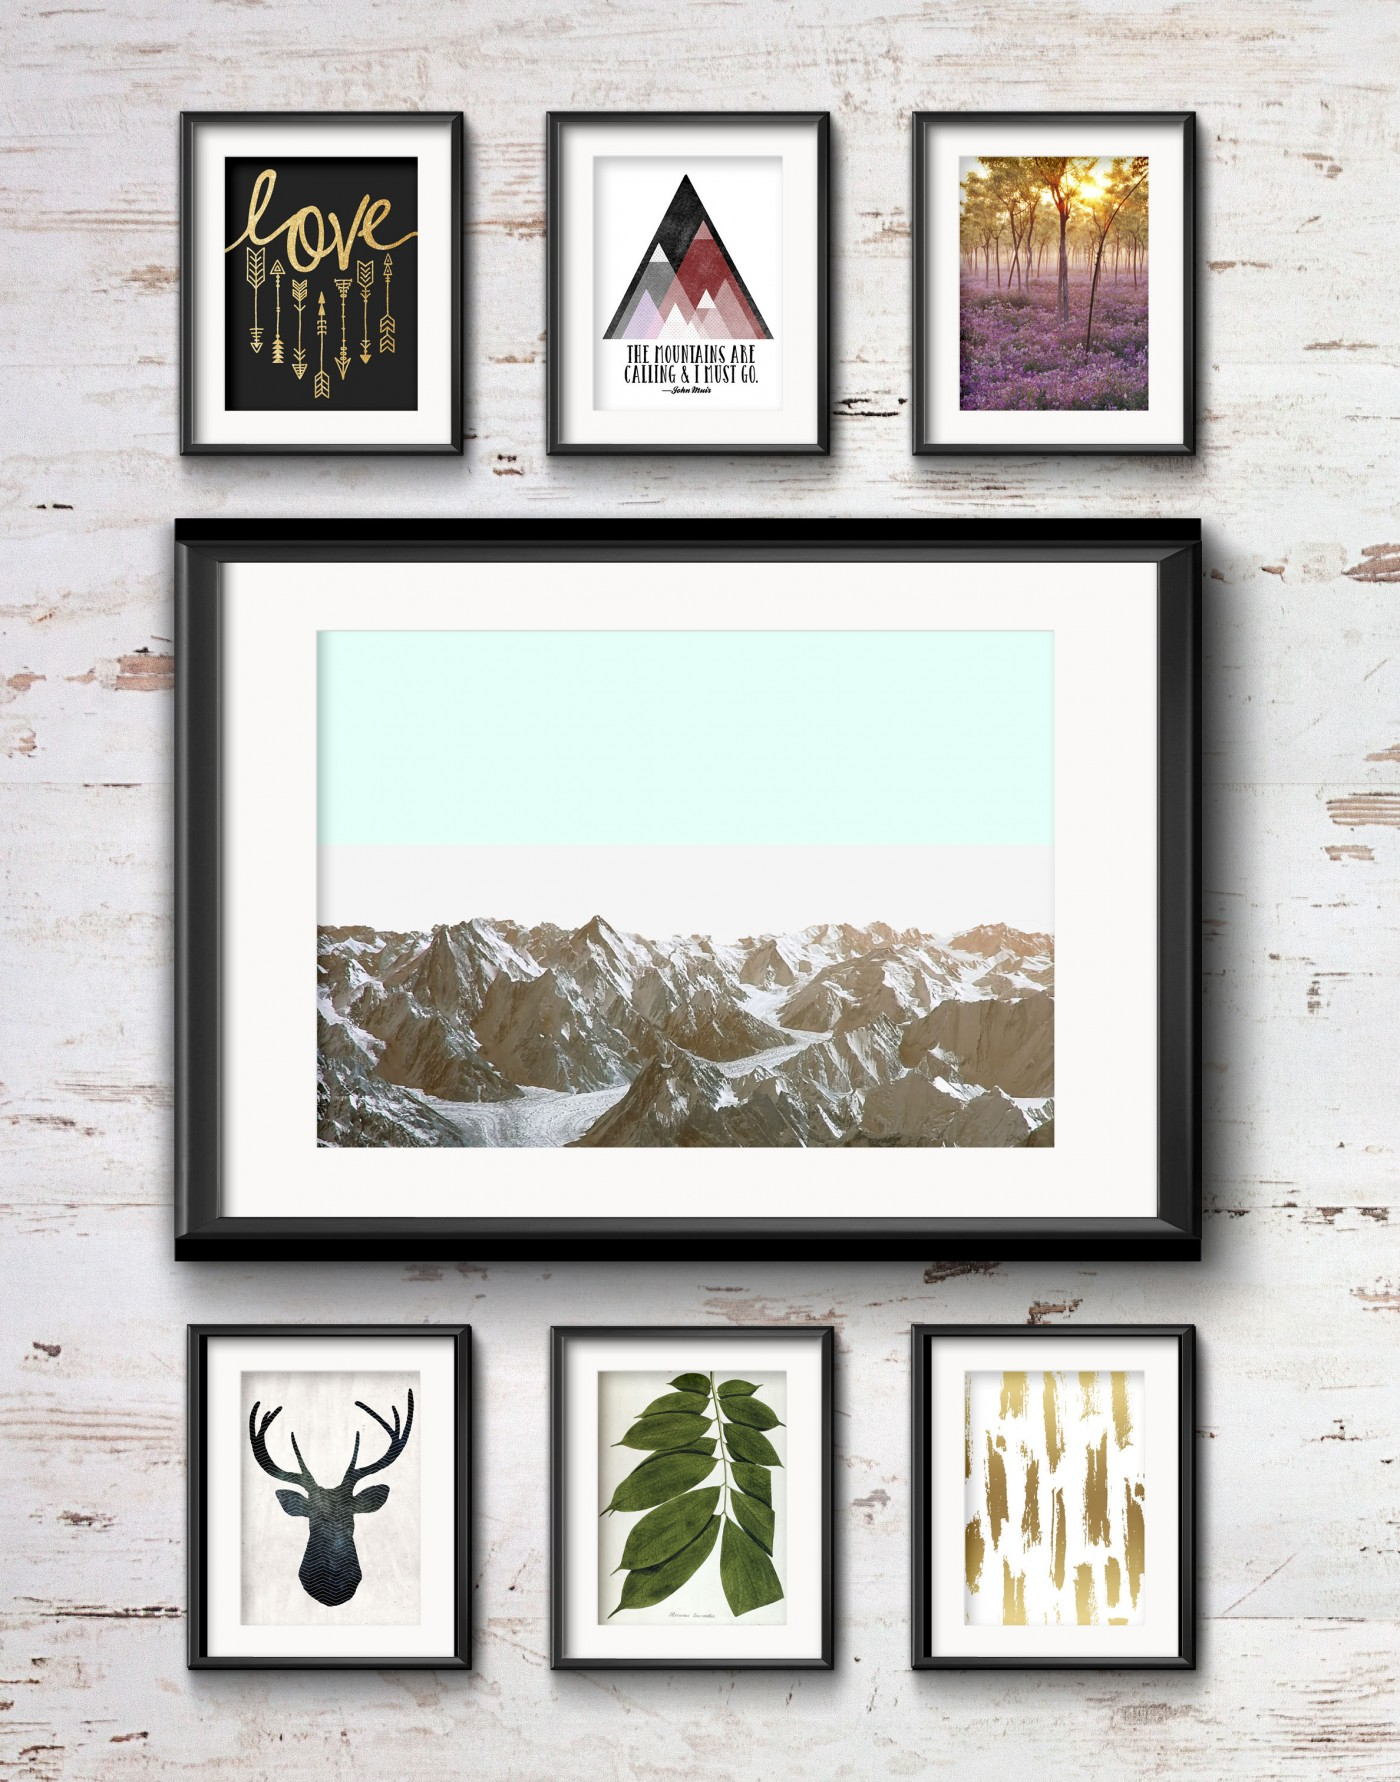 Frame Game: Cozy Rustic Vibe for a Cabin Gallery Wall • Frame Game is an occasional series in which I take readers' gallery wall requests and find art that fits their personalities • Little Gold Pixel